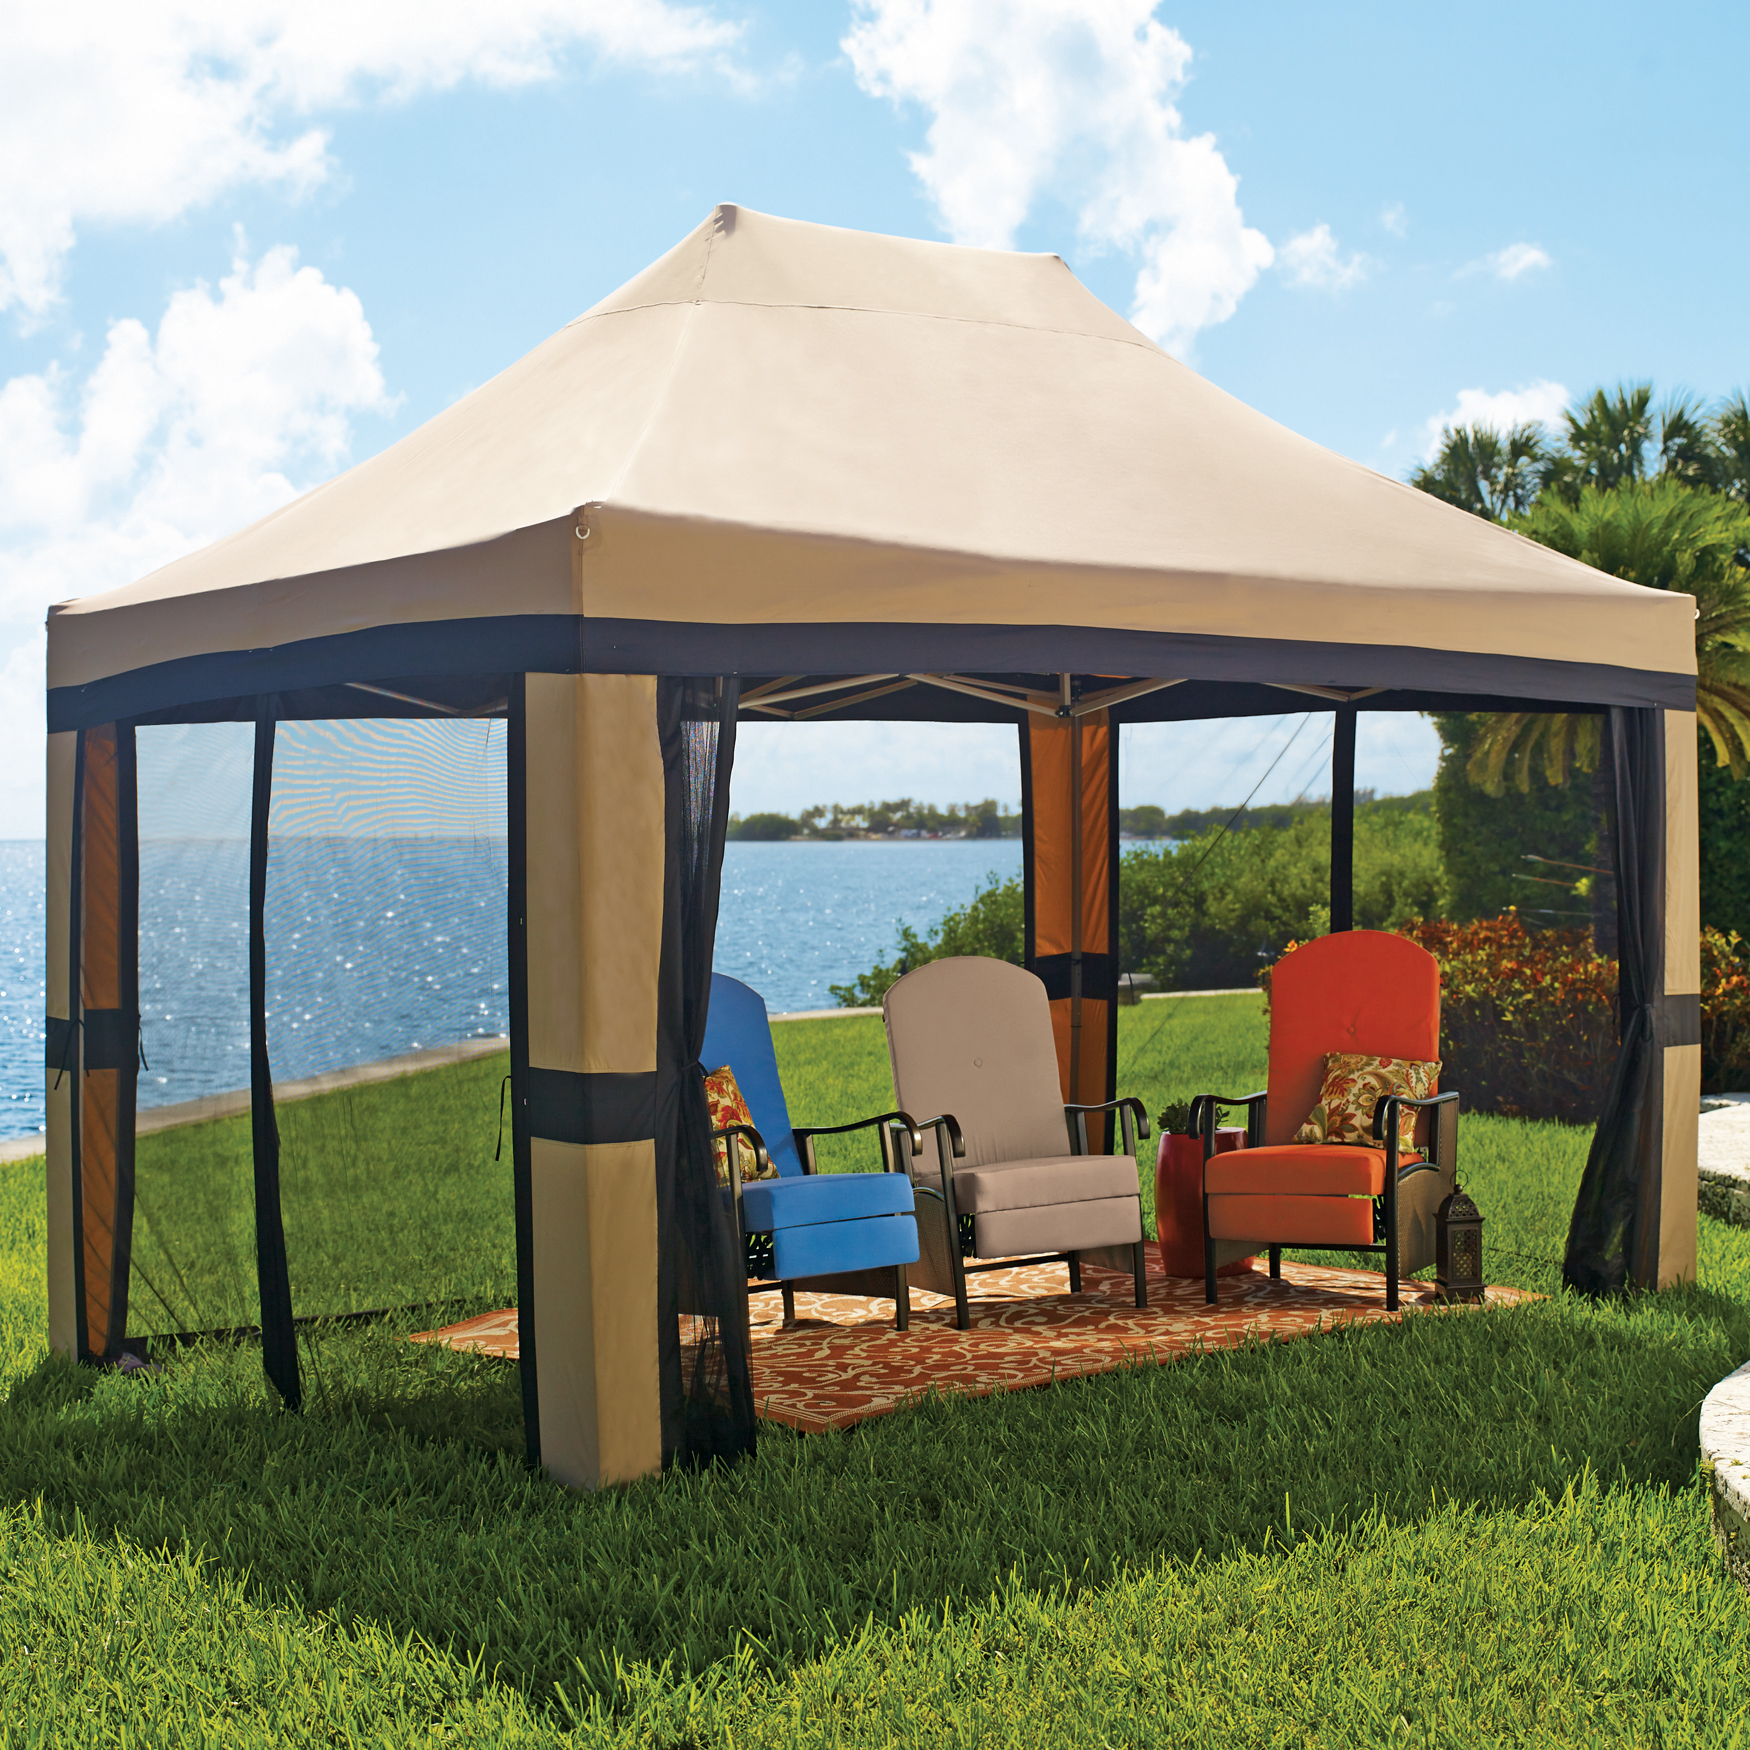 BrylaneHome Oversized 10x15-Foot Instant Pop-Up Gazebo with Screen